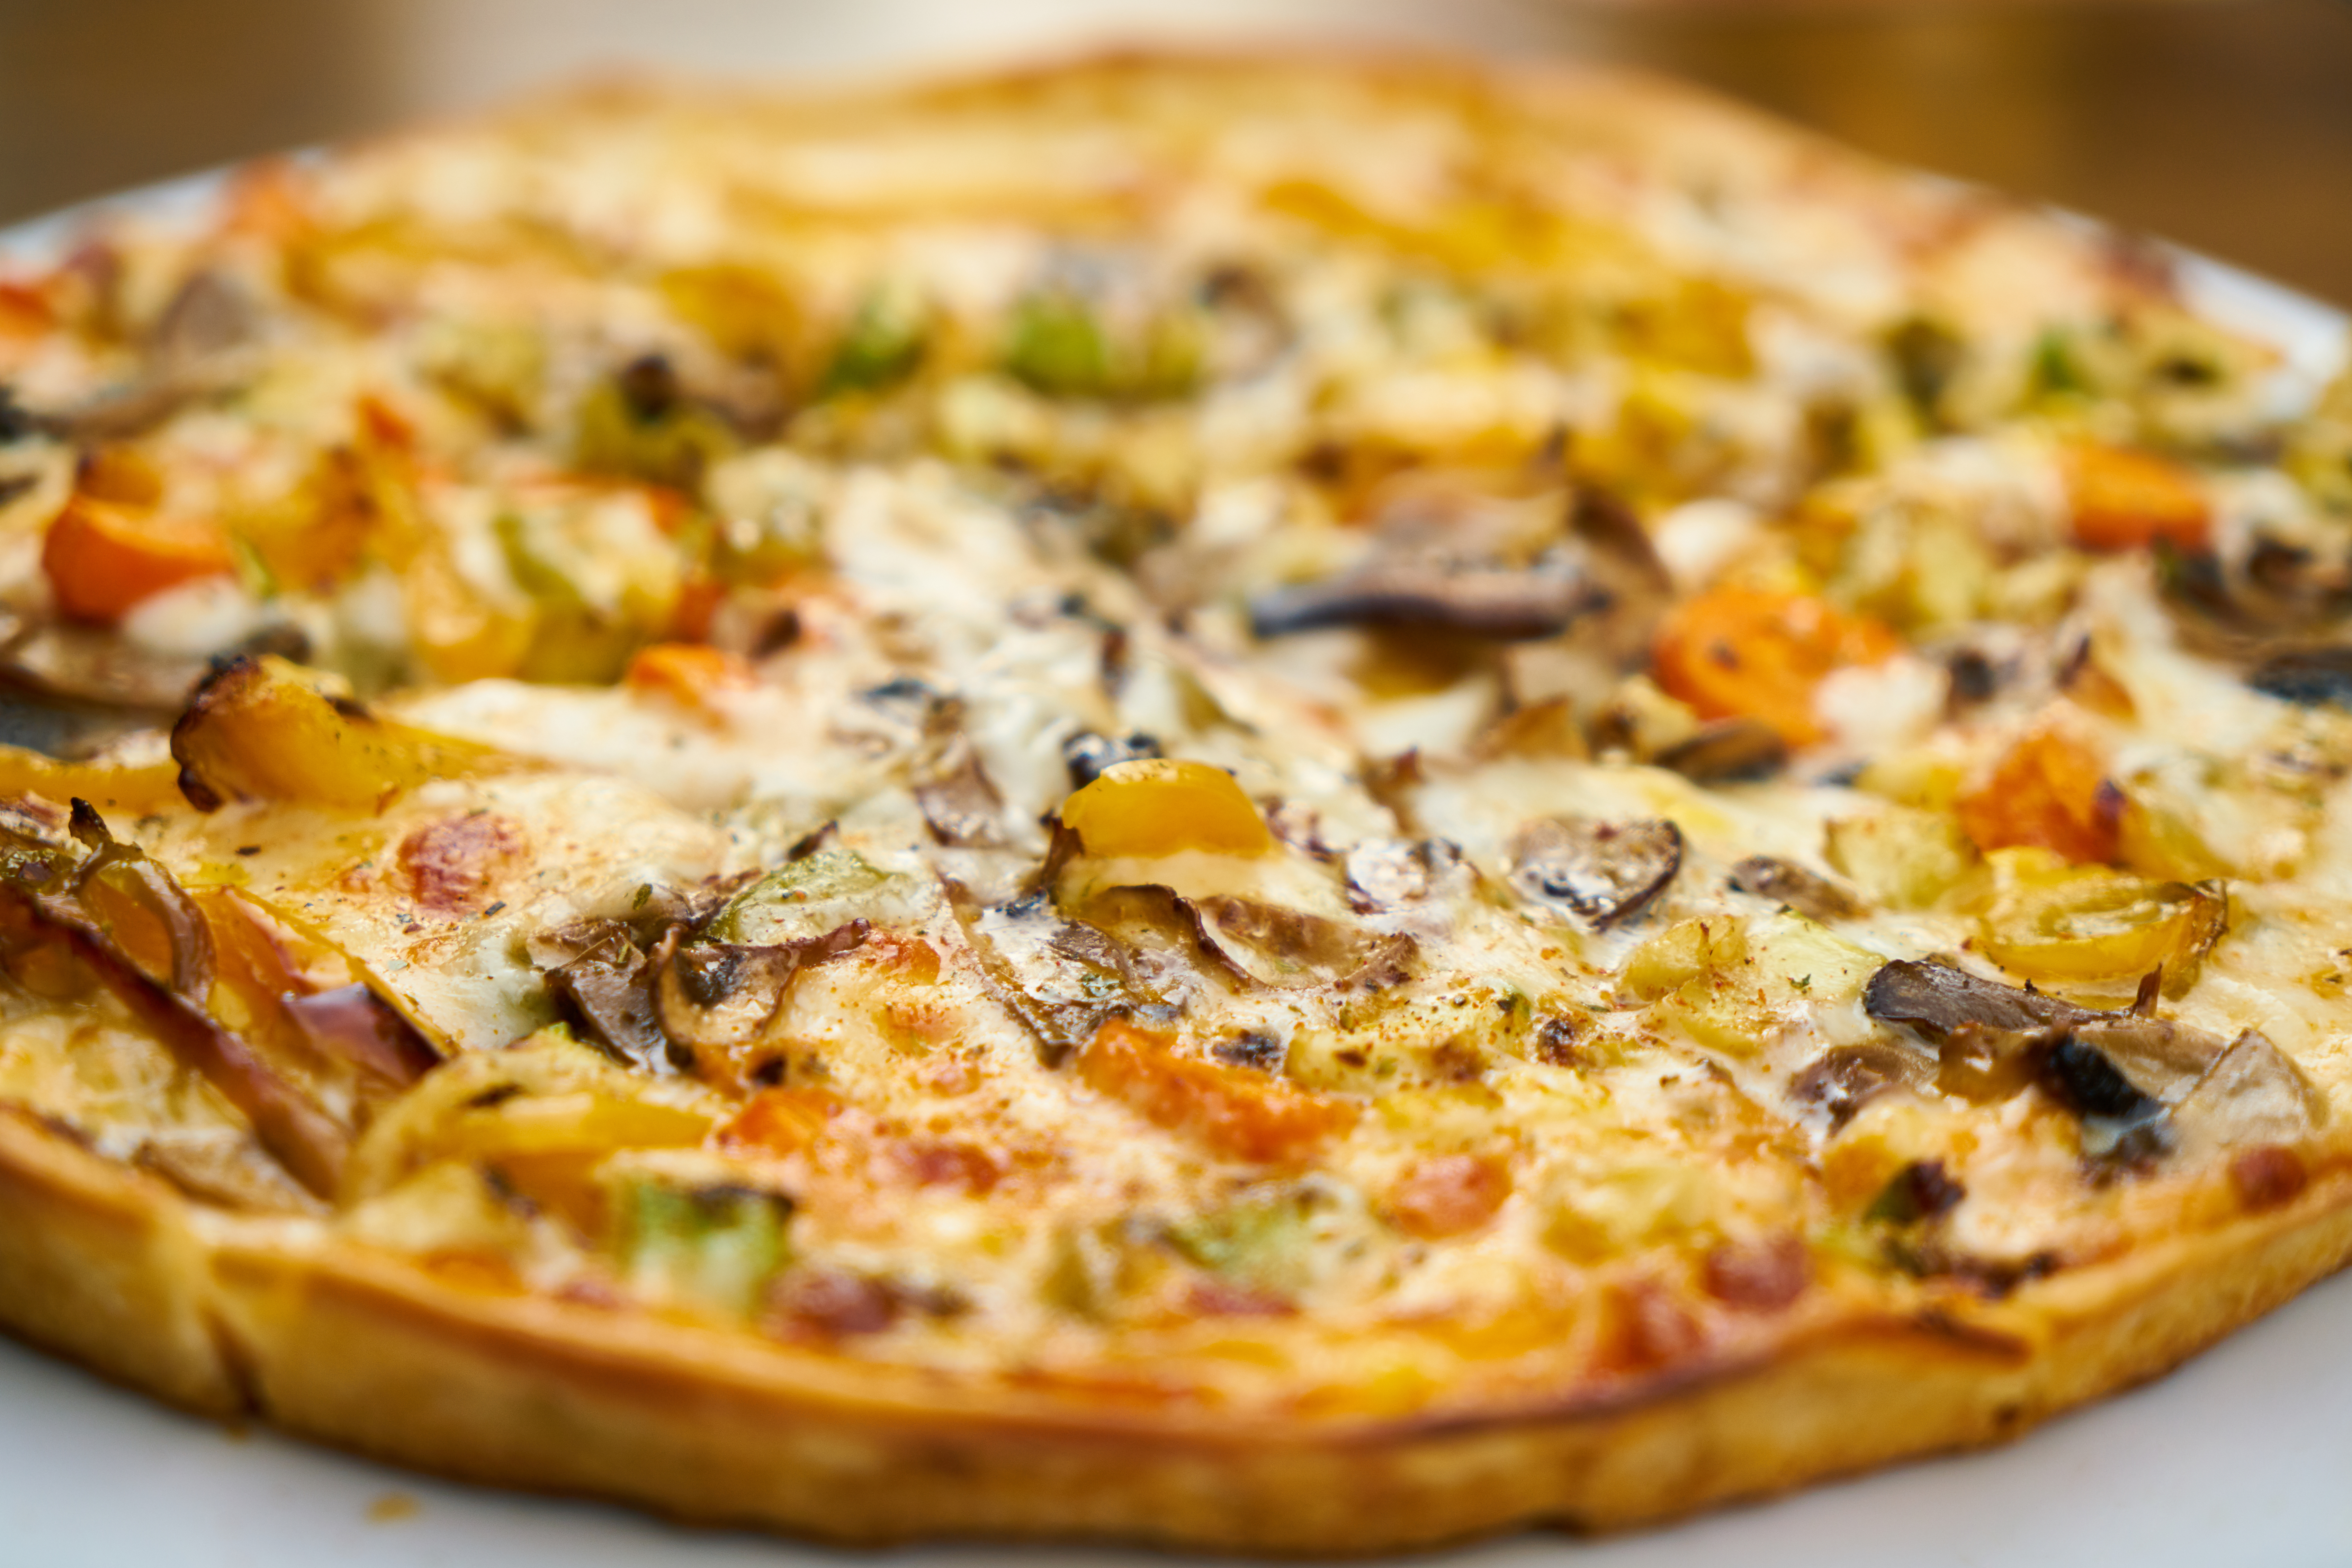 Food Photography of Pizza